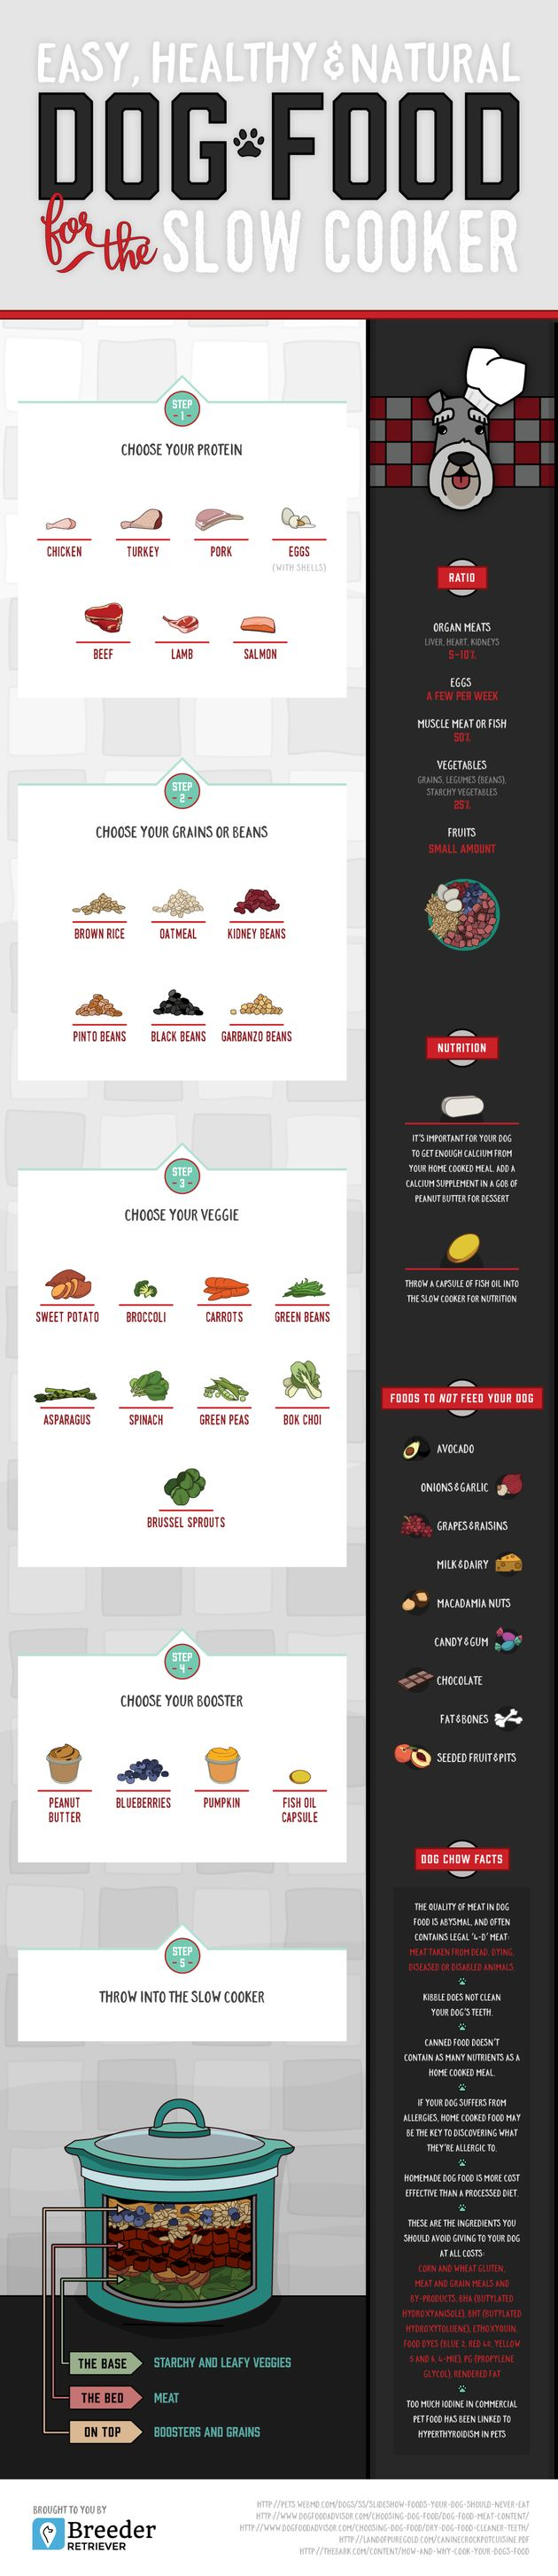 Best 25 diabetic dog food ideas on pinterest recipe for fyi you can make dog food in a slow cooker forumfinder Images